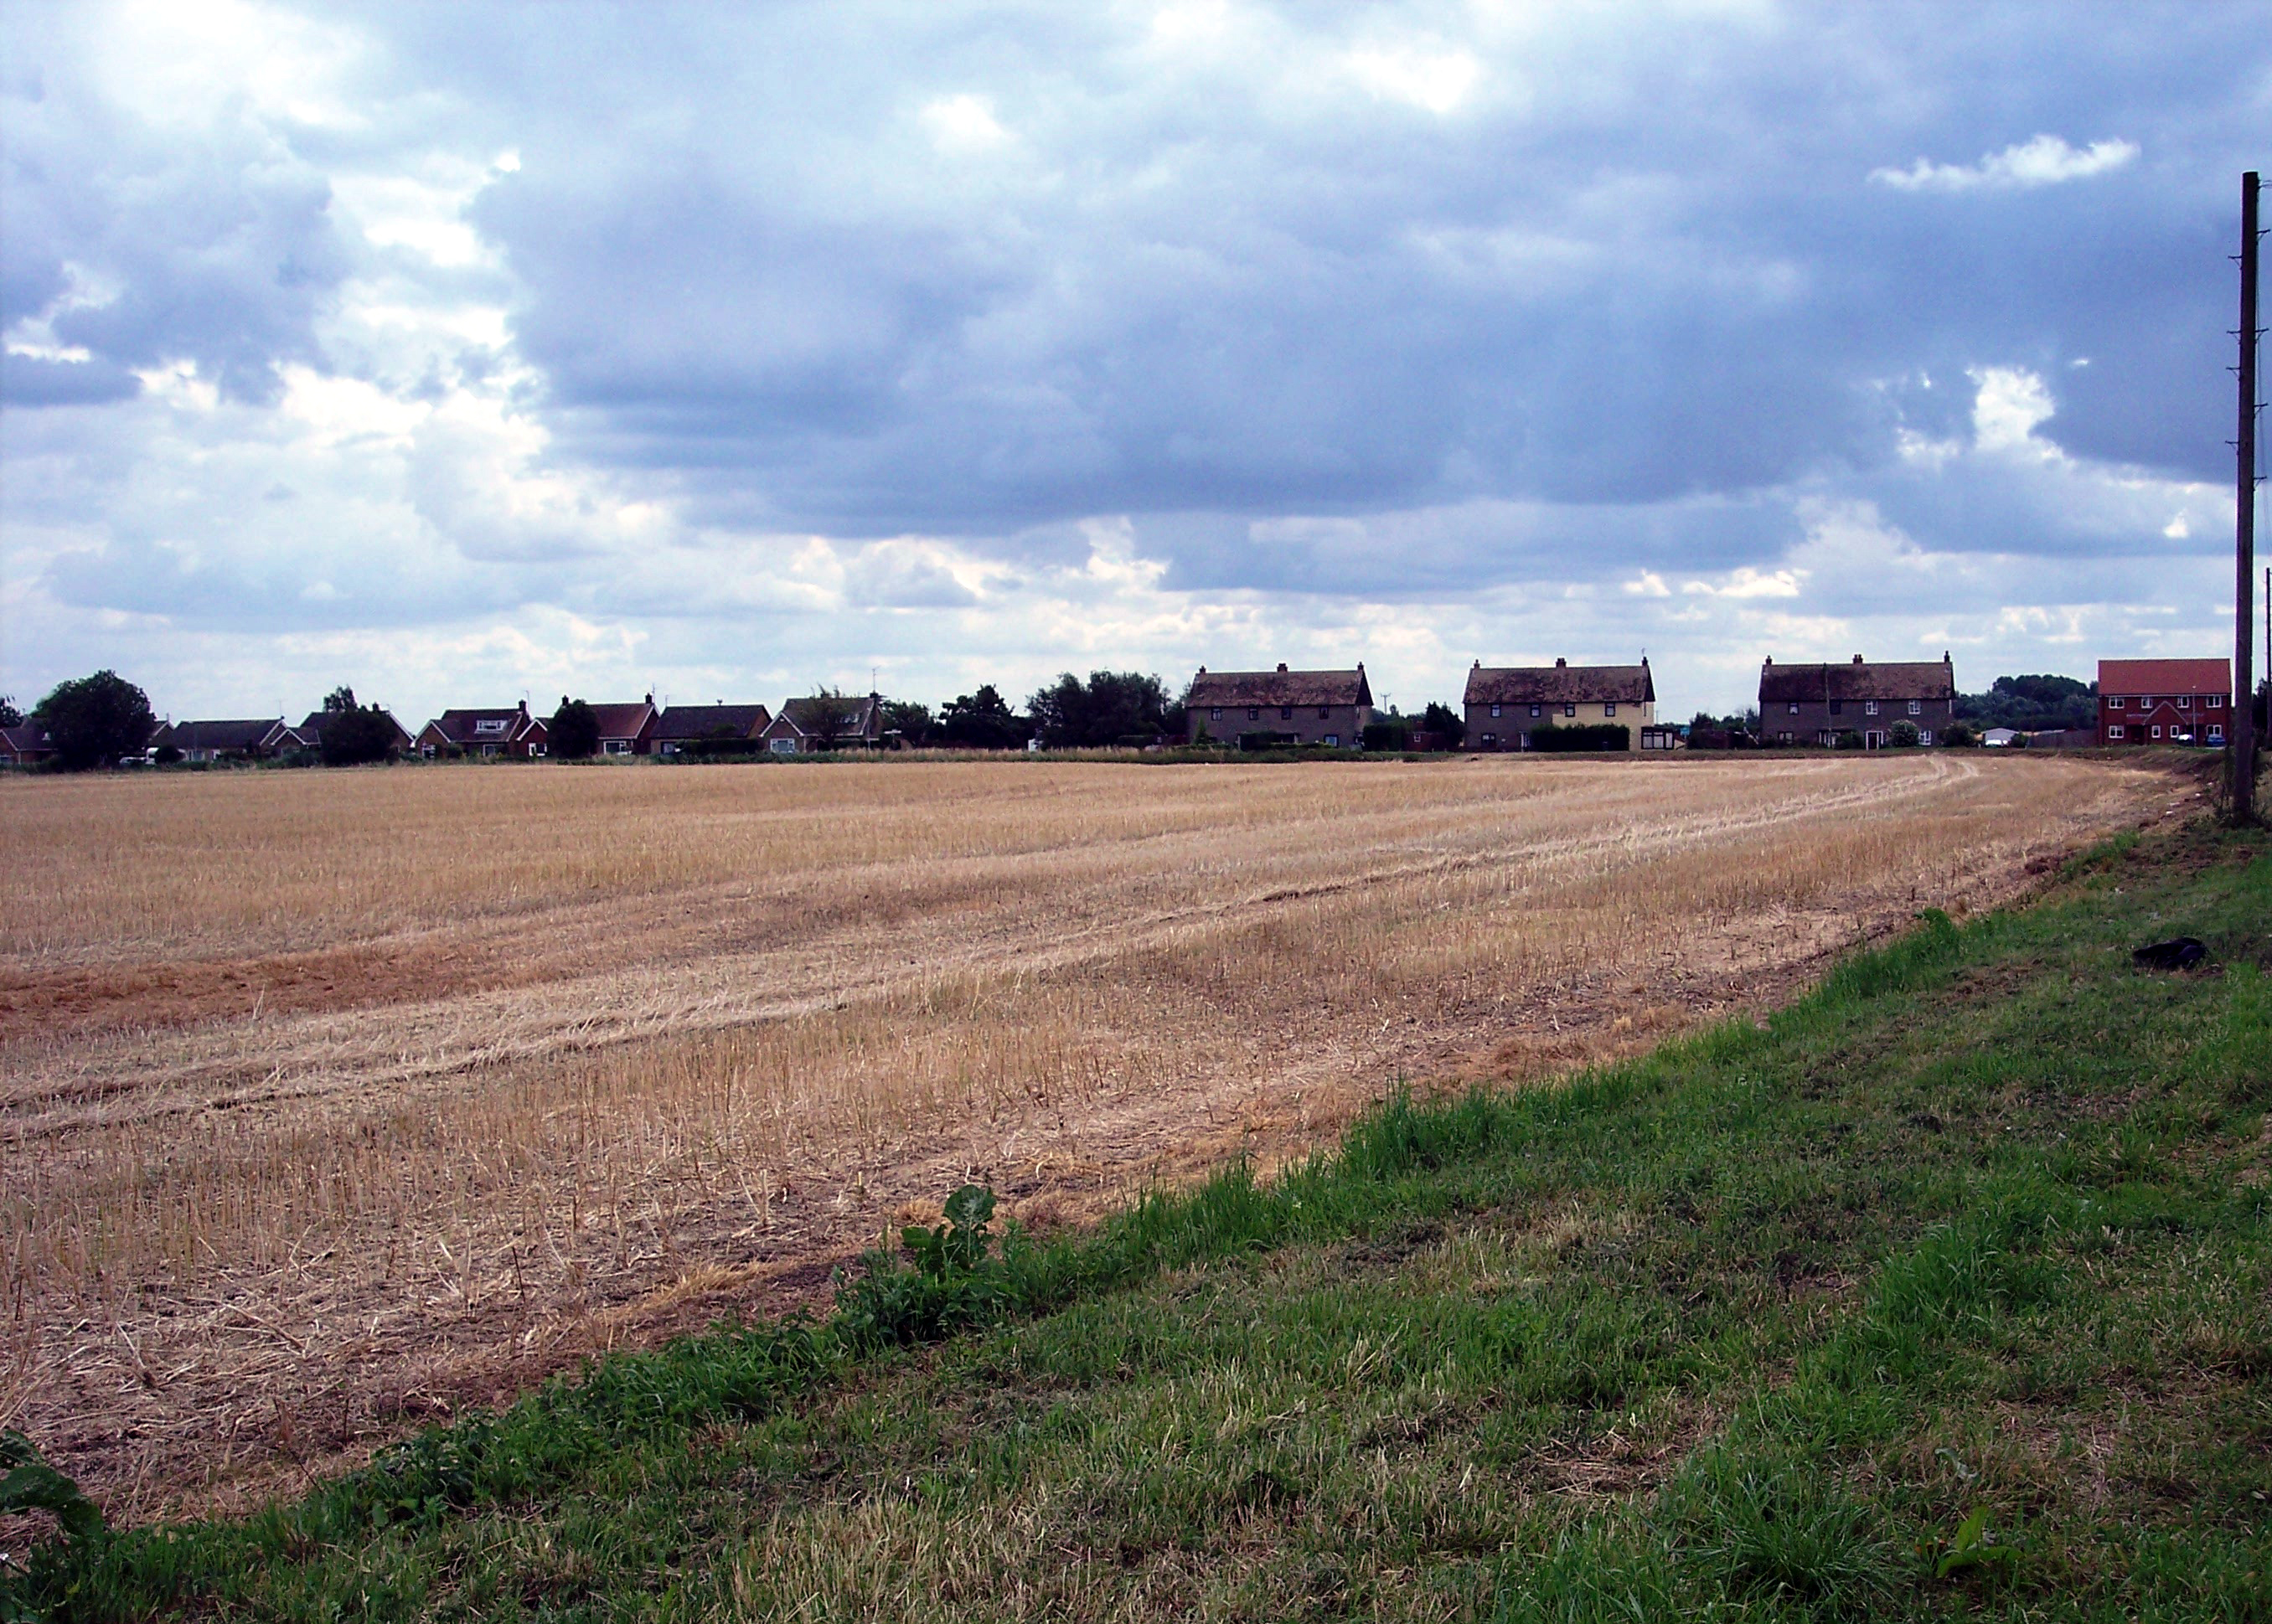 The Smeeth is a an area of good arable land between King�s Lynn and Wisbech. However it was once a wild area comprising of 1572 acres of boggy marshland surrounded to the south by Fenland with reeds and large pools of water.